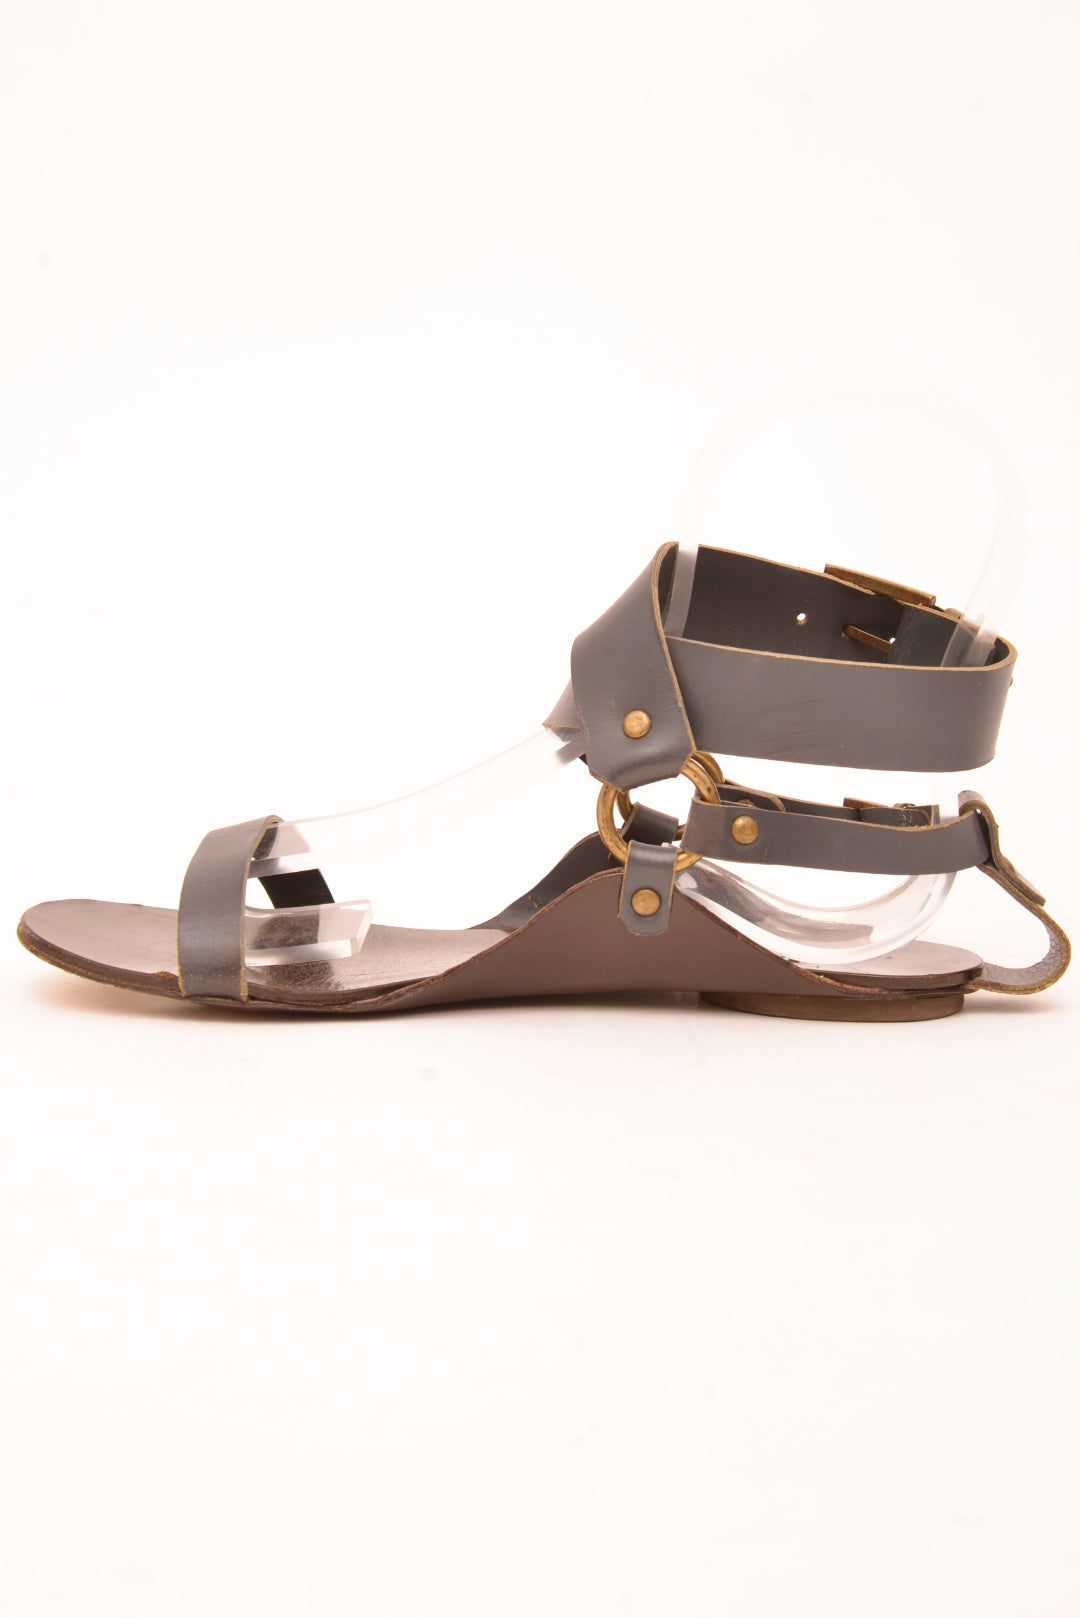 Scanlan & Theodore Navy Sandals (38) - Mercado32